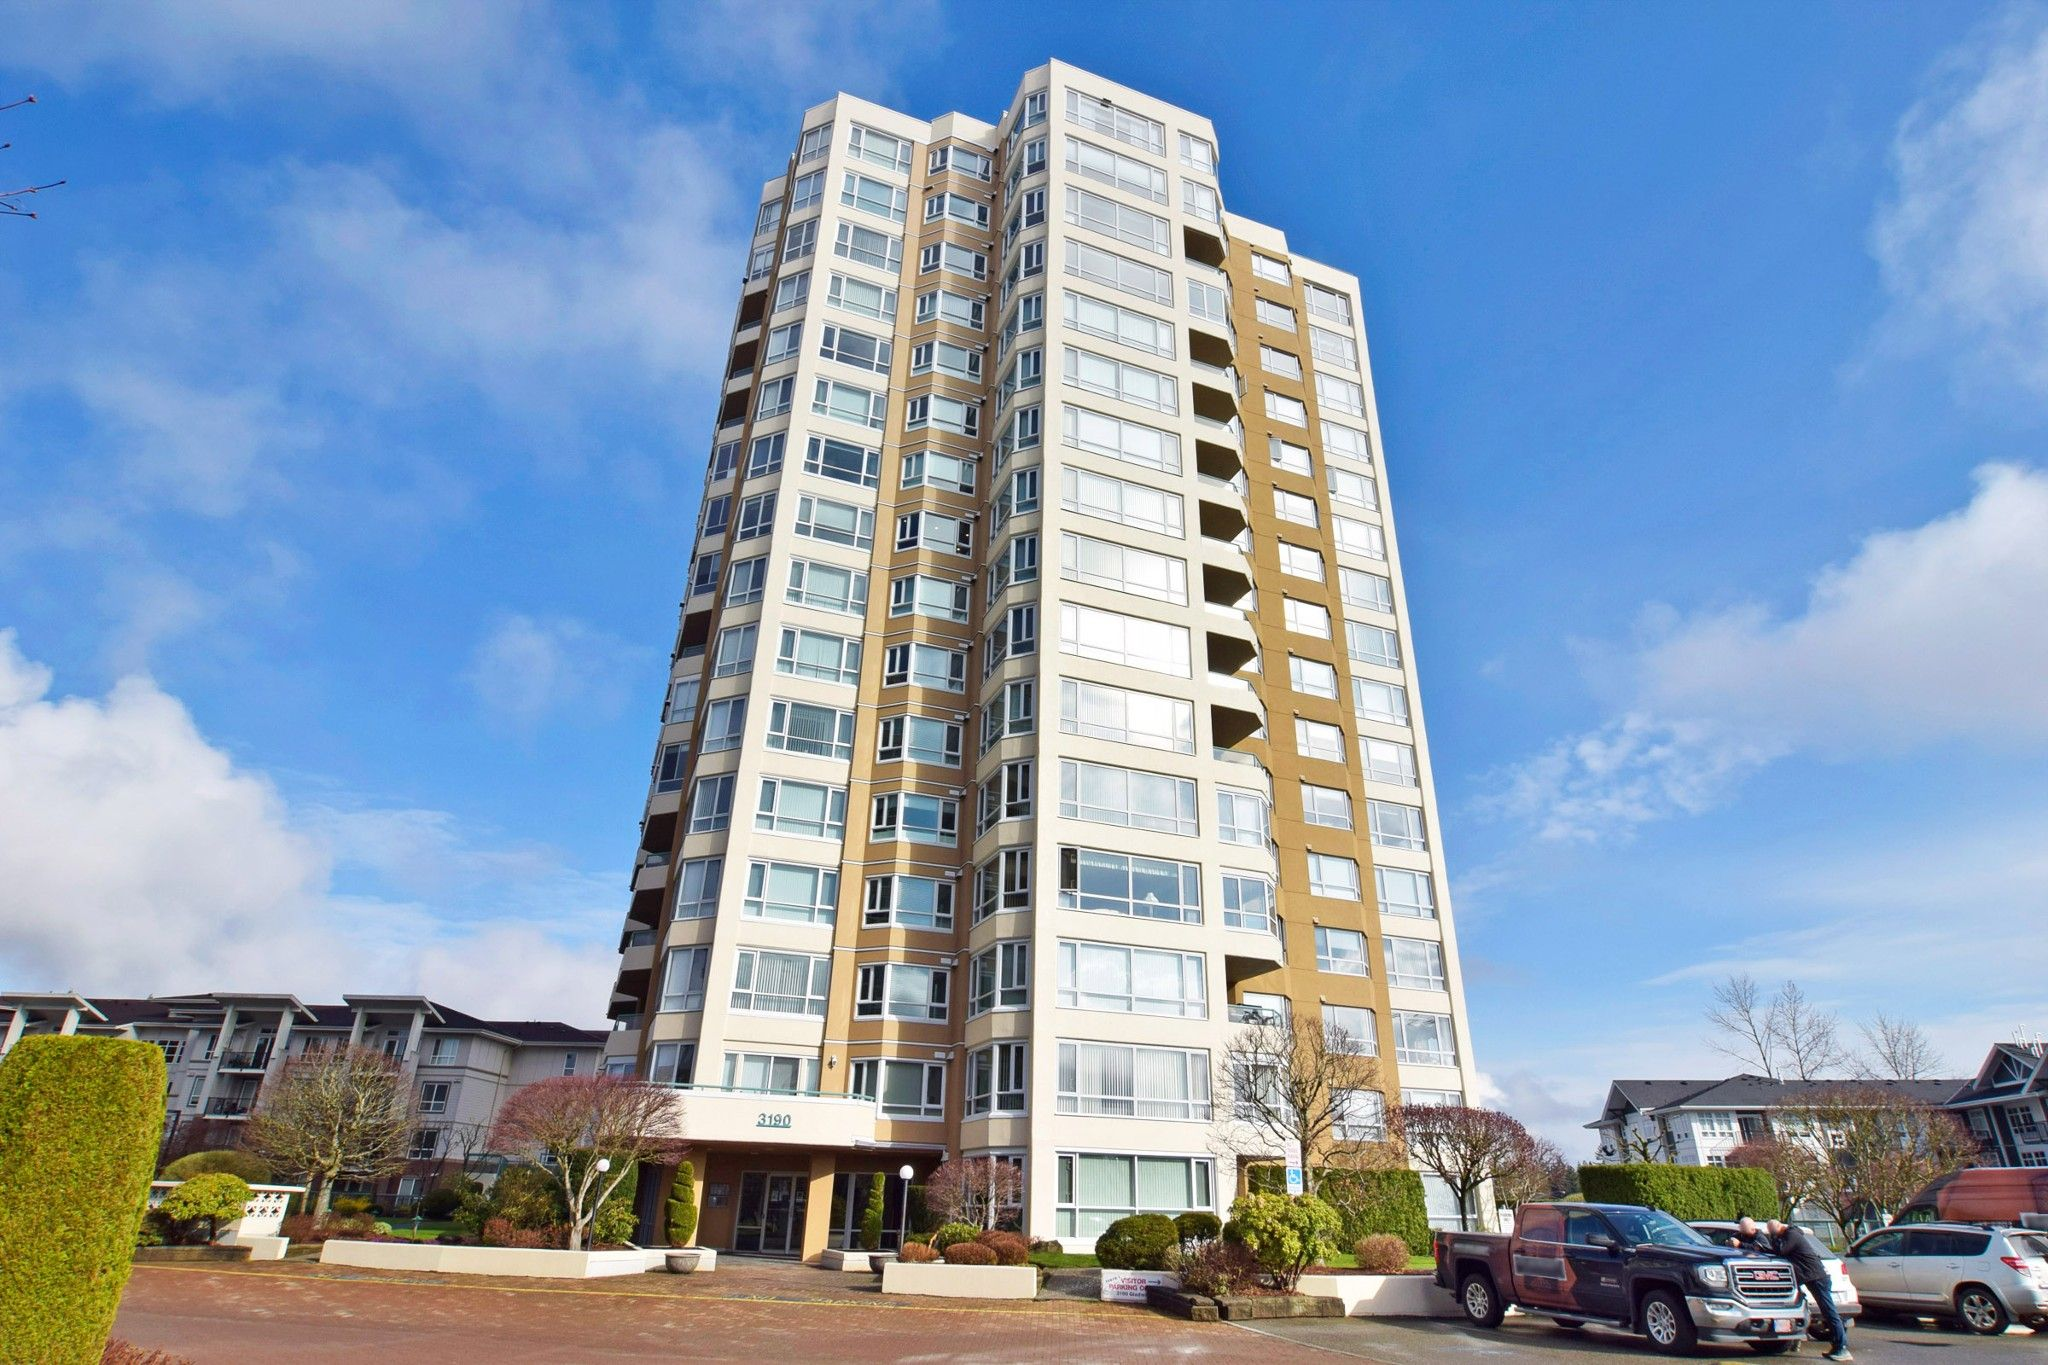 """Main Photo: 1701 3190 GLADWIN Road in Abbotsford: Central Abbotsford Condo for sale in """"REGENCY PARK III"""" : MLS®# R2560674"""